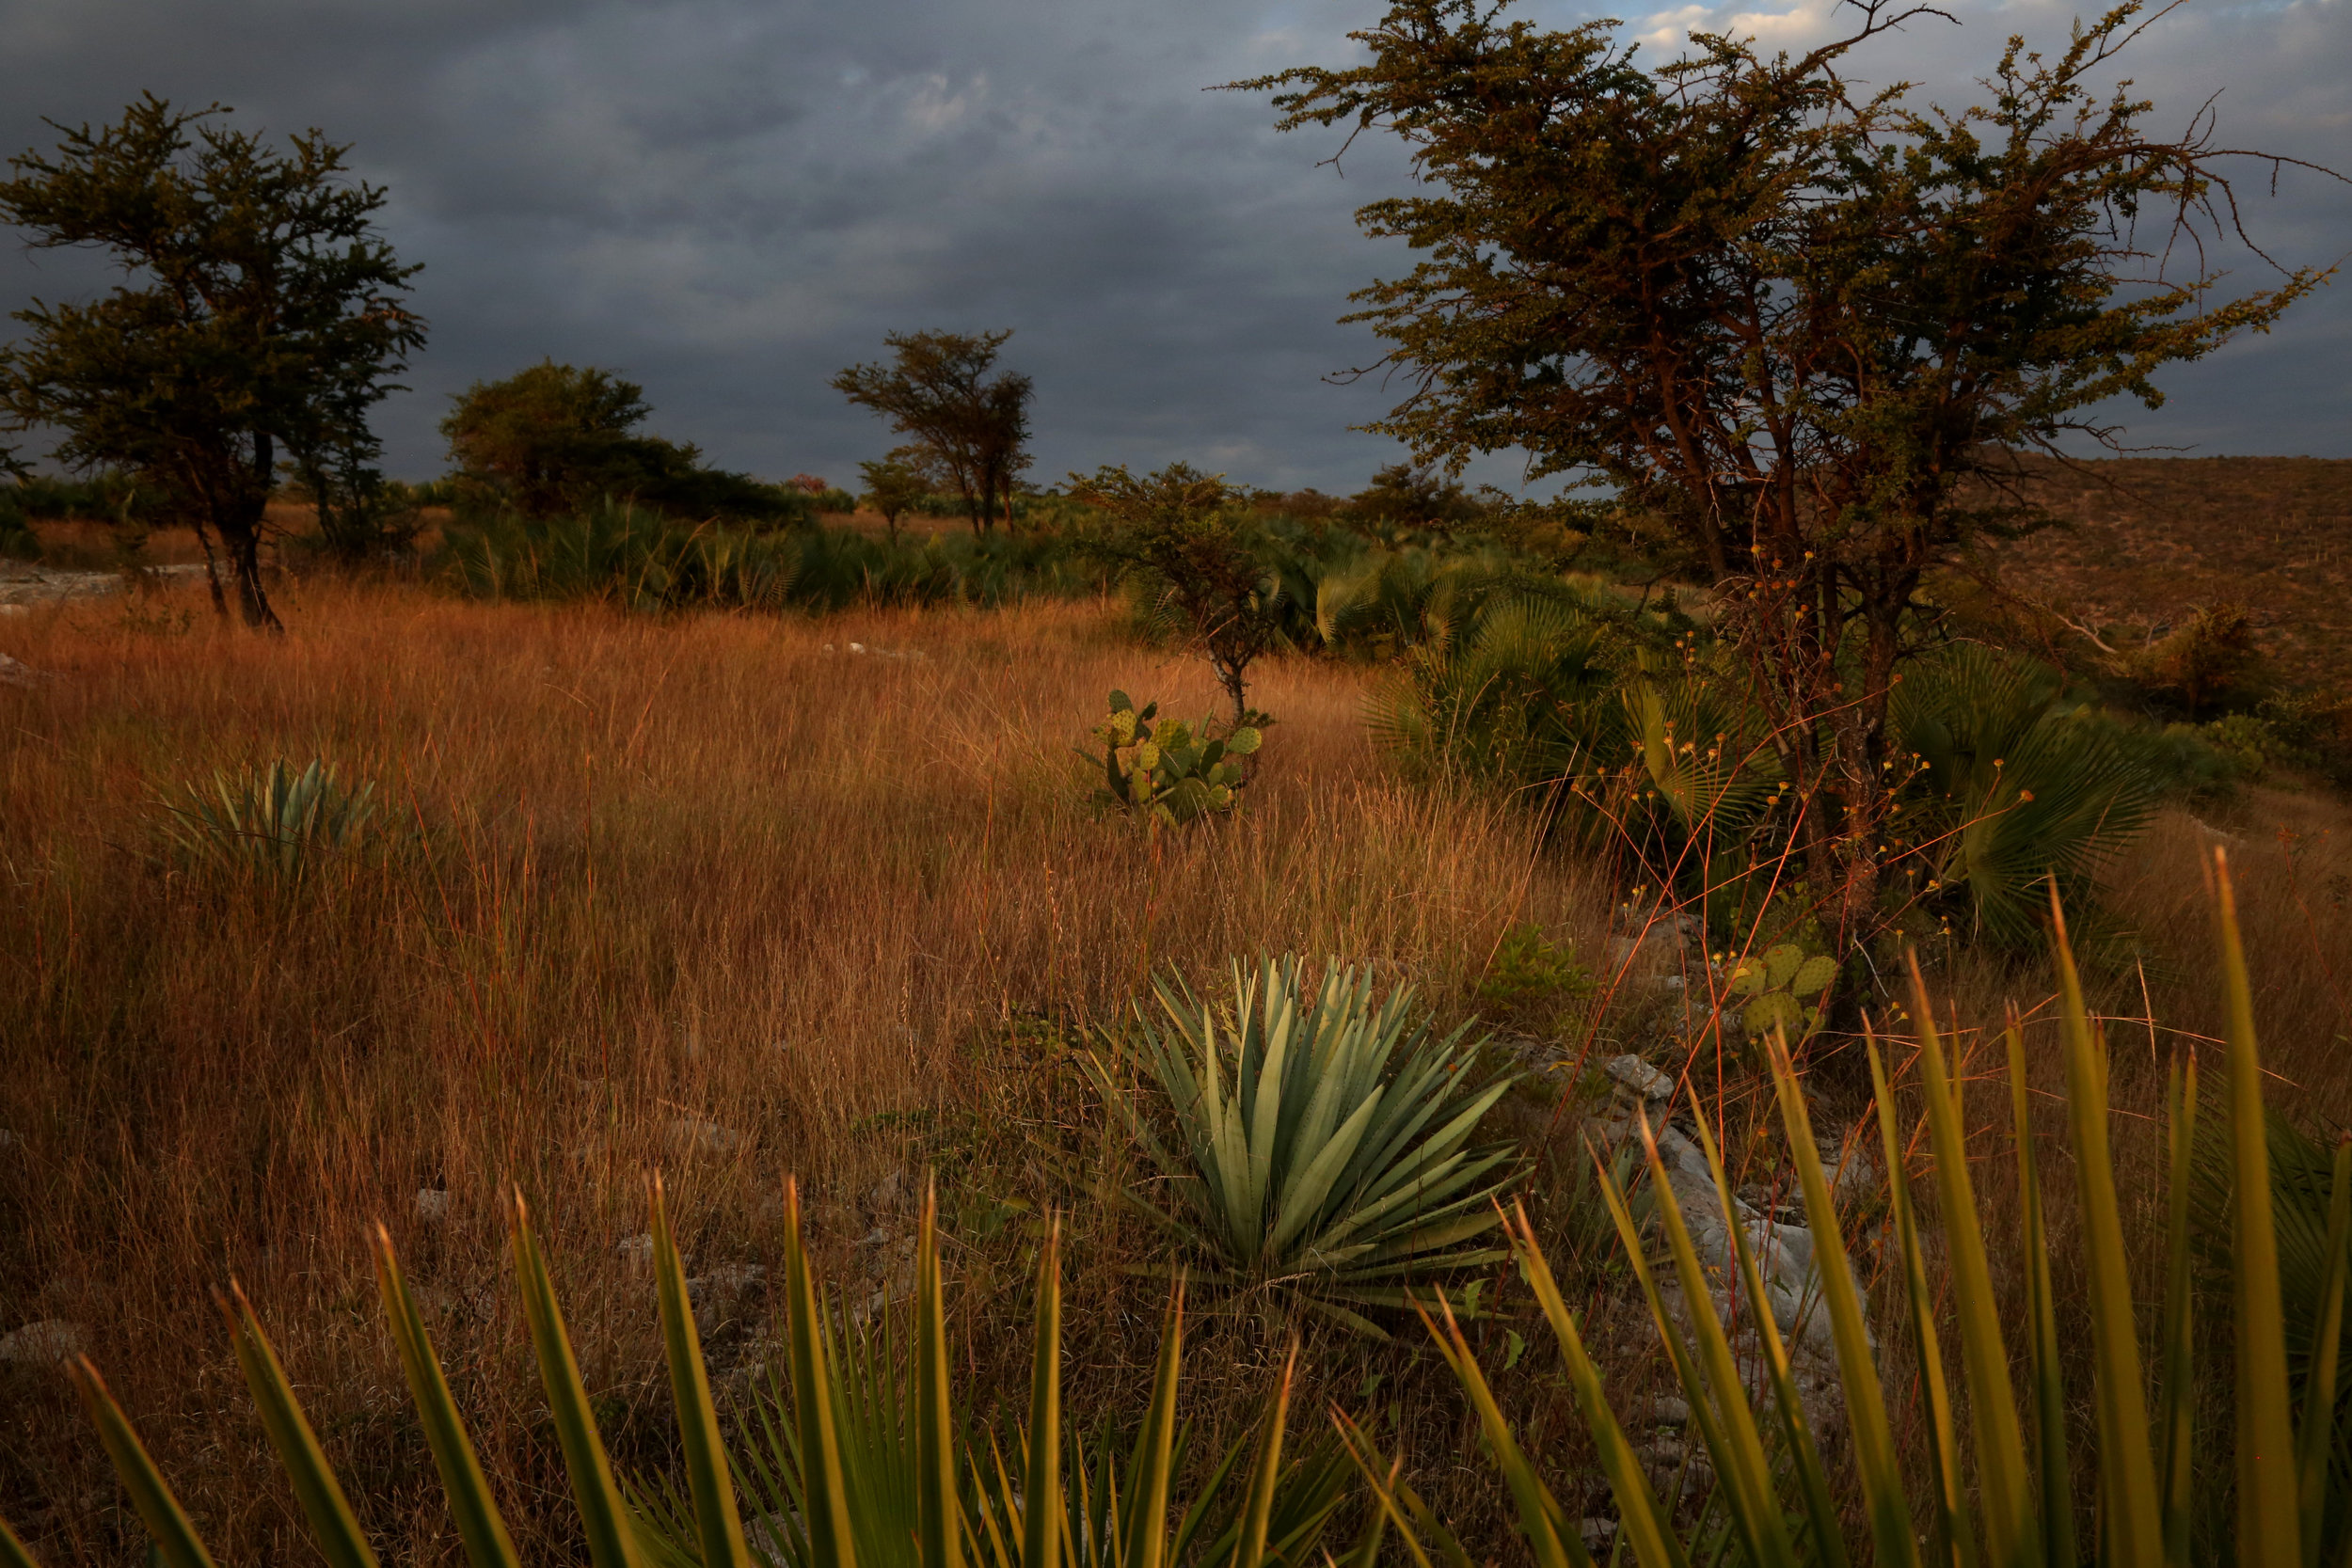 A wild agave grows near  Atlixo, Puebla.